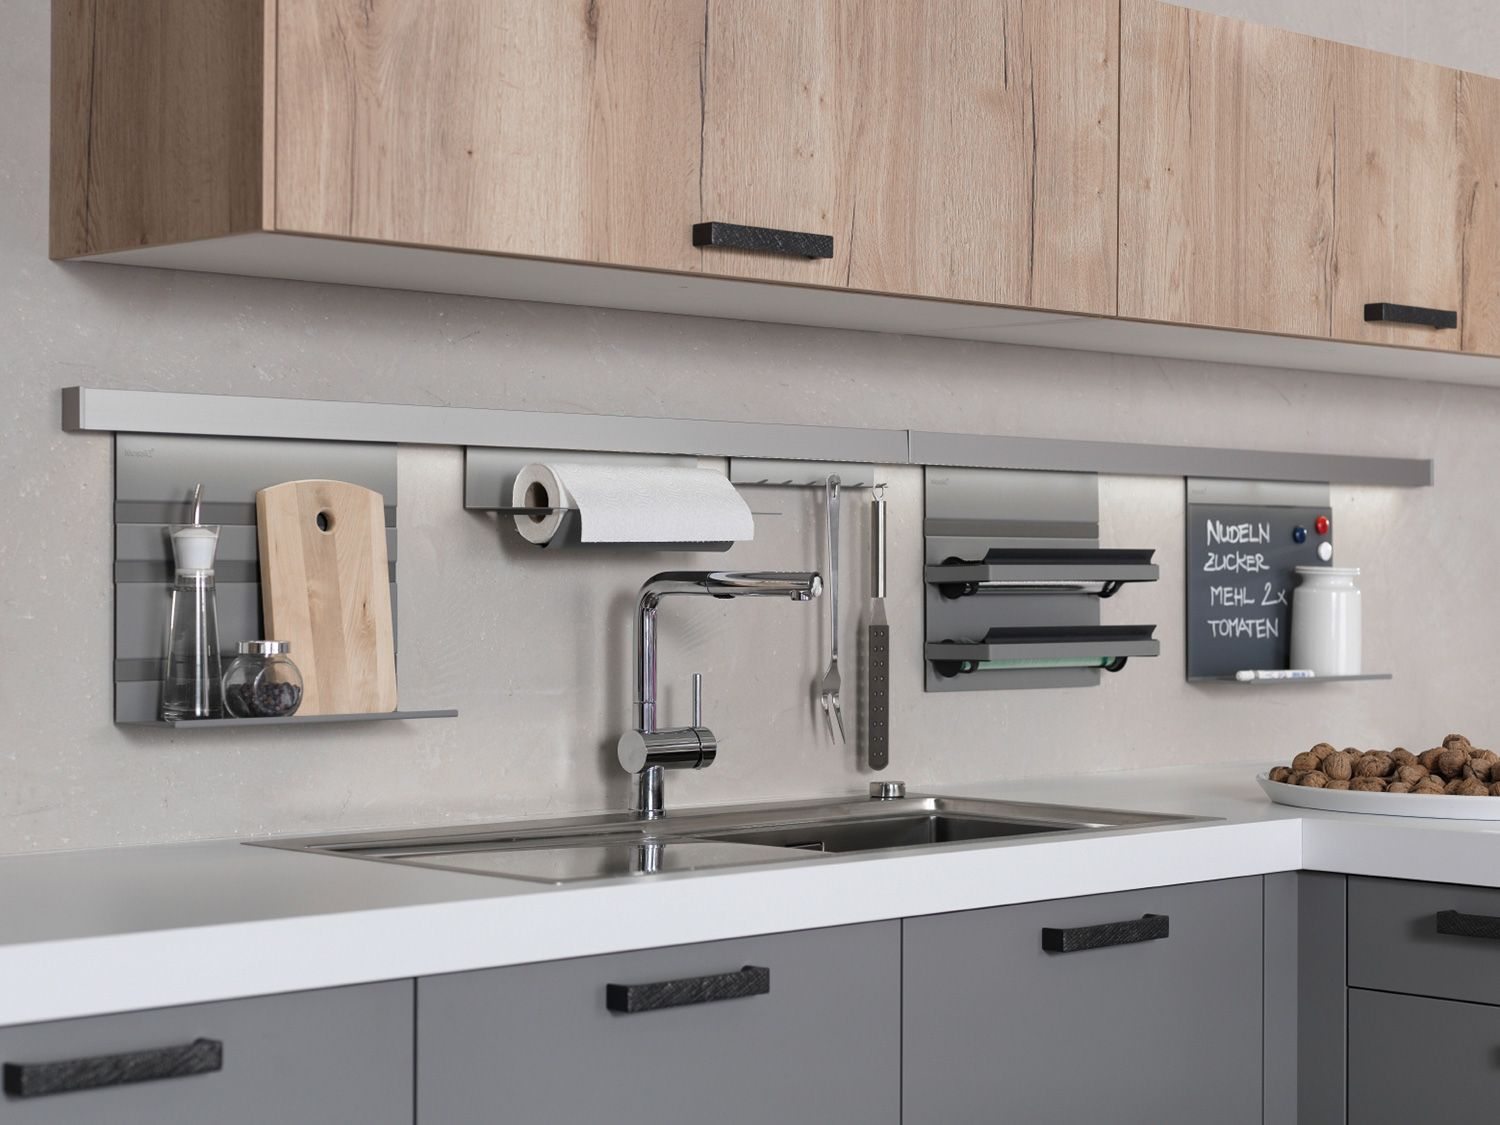 quality lovers user choice streamlined design the under wall unit accessories 11 28 2014 on kitchen interior accessories id=81321